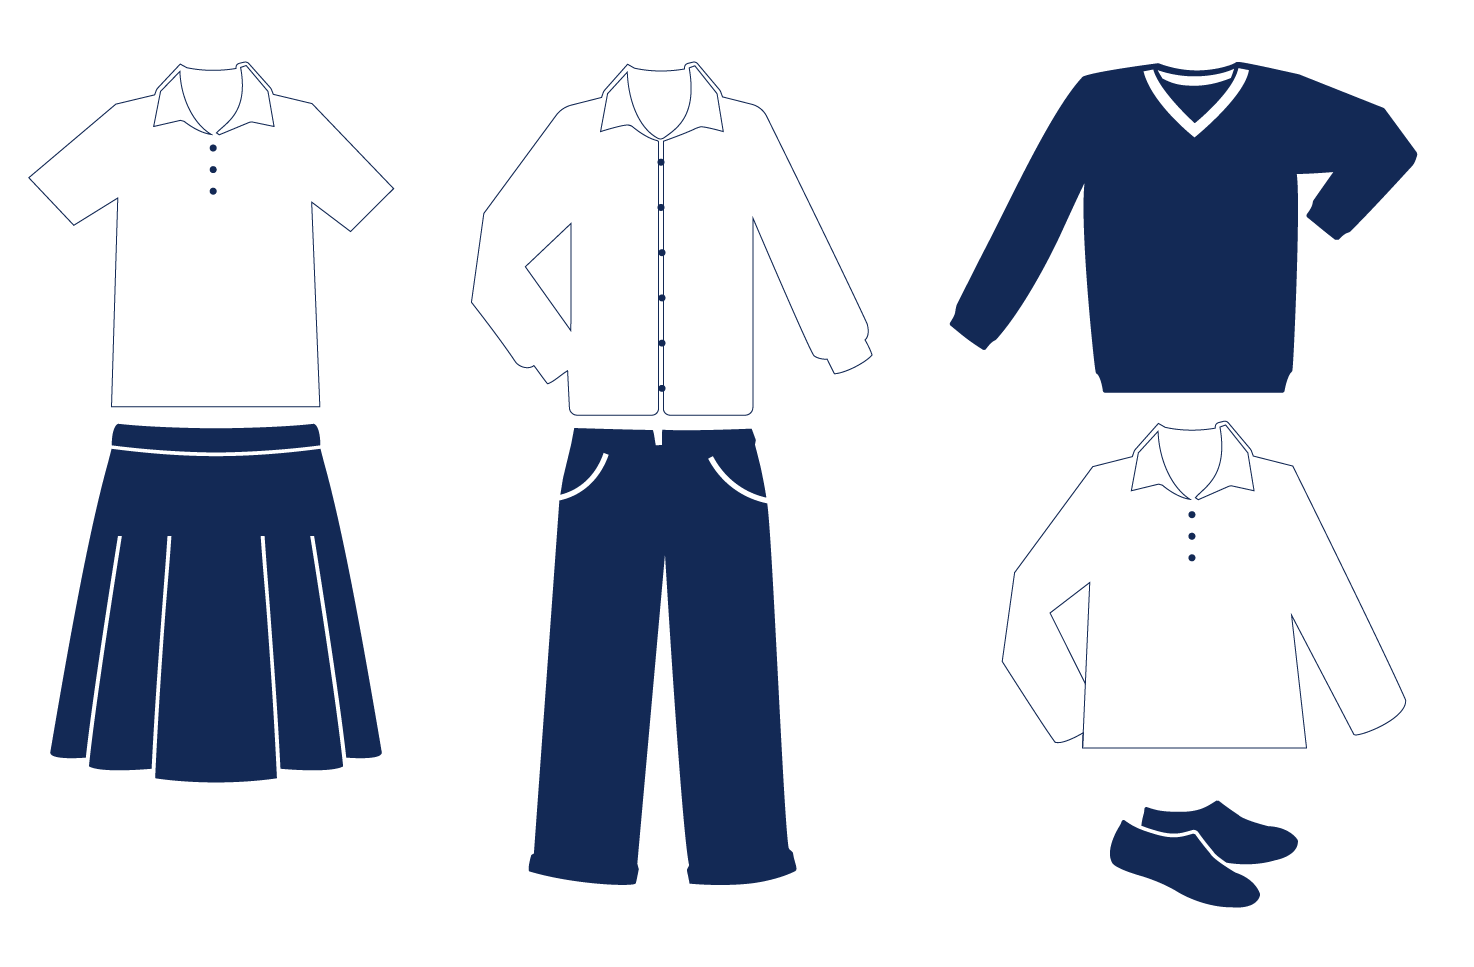 Dress Code Saint Francis School In Rome